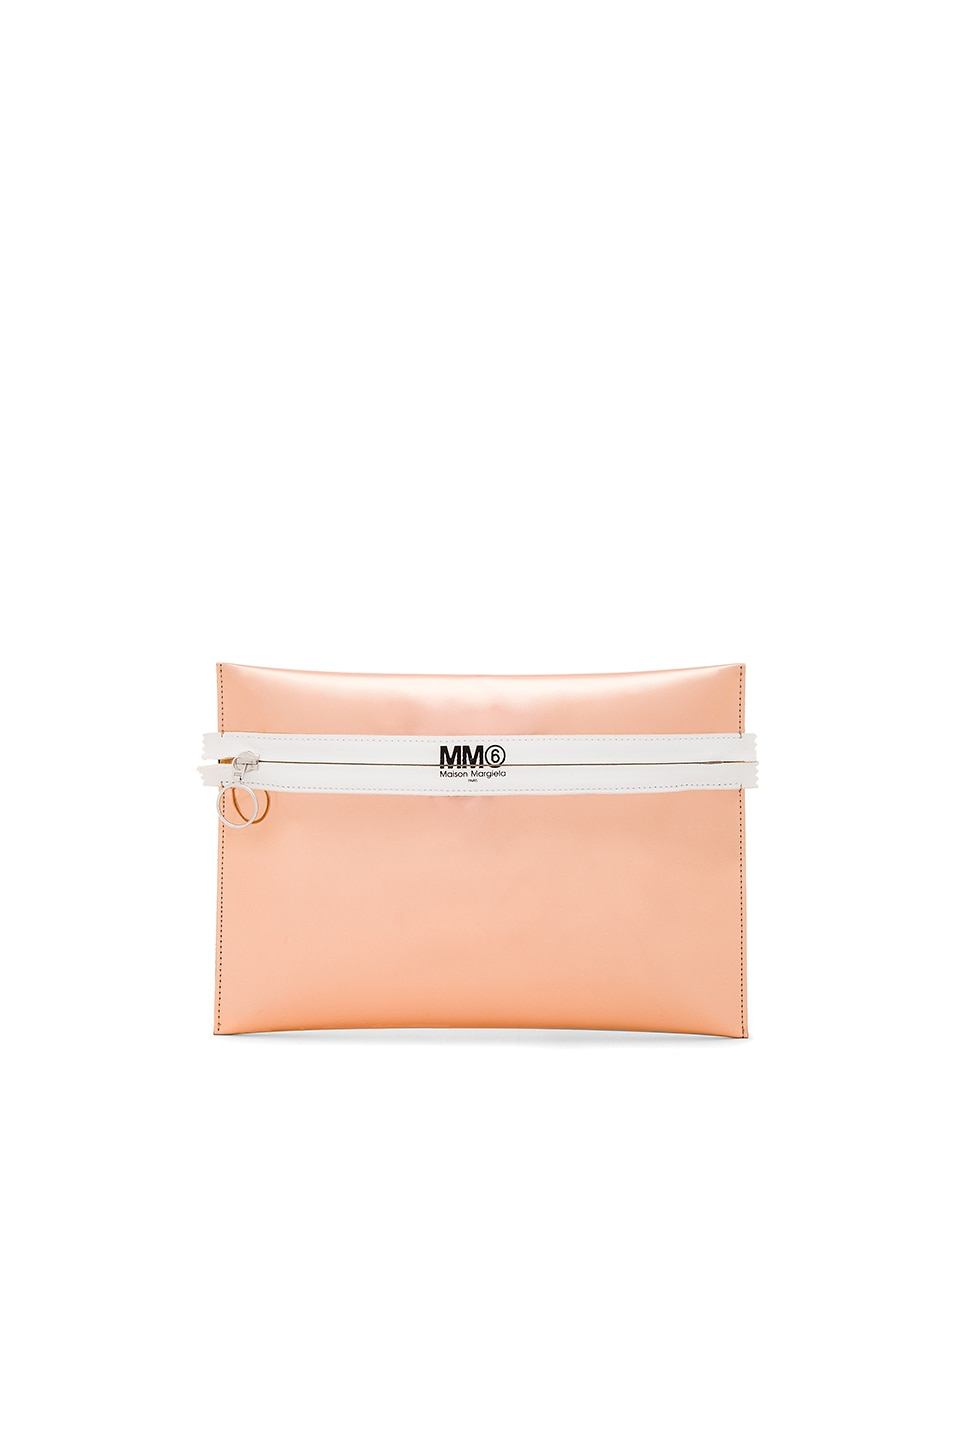 Clutch by MM6 Maison Margiela